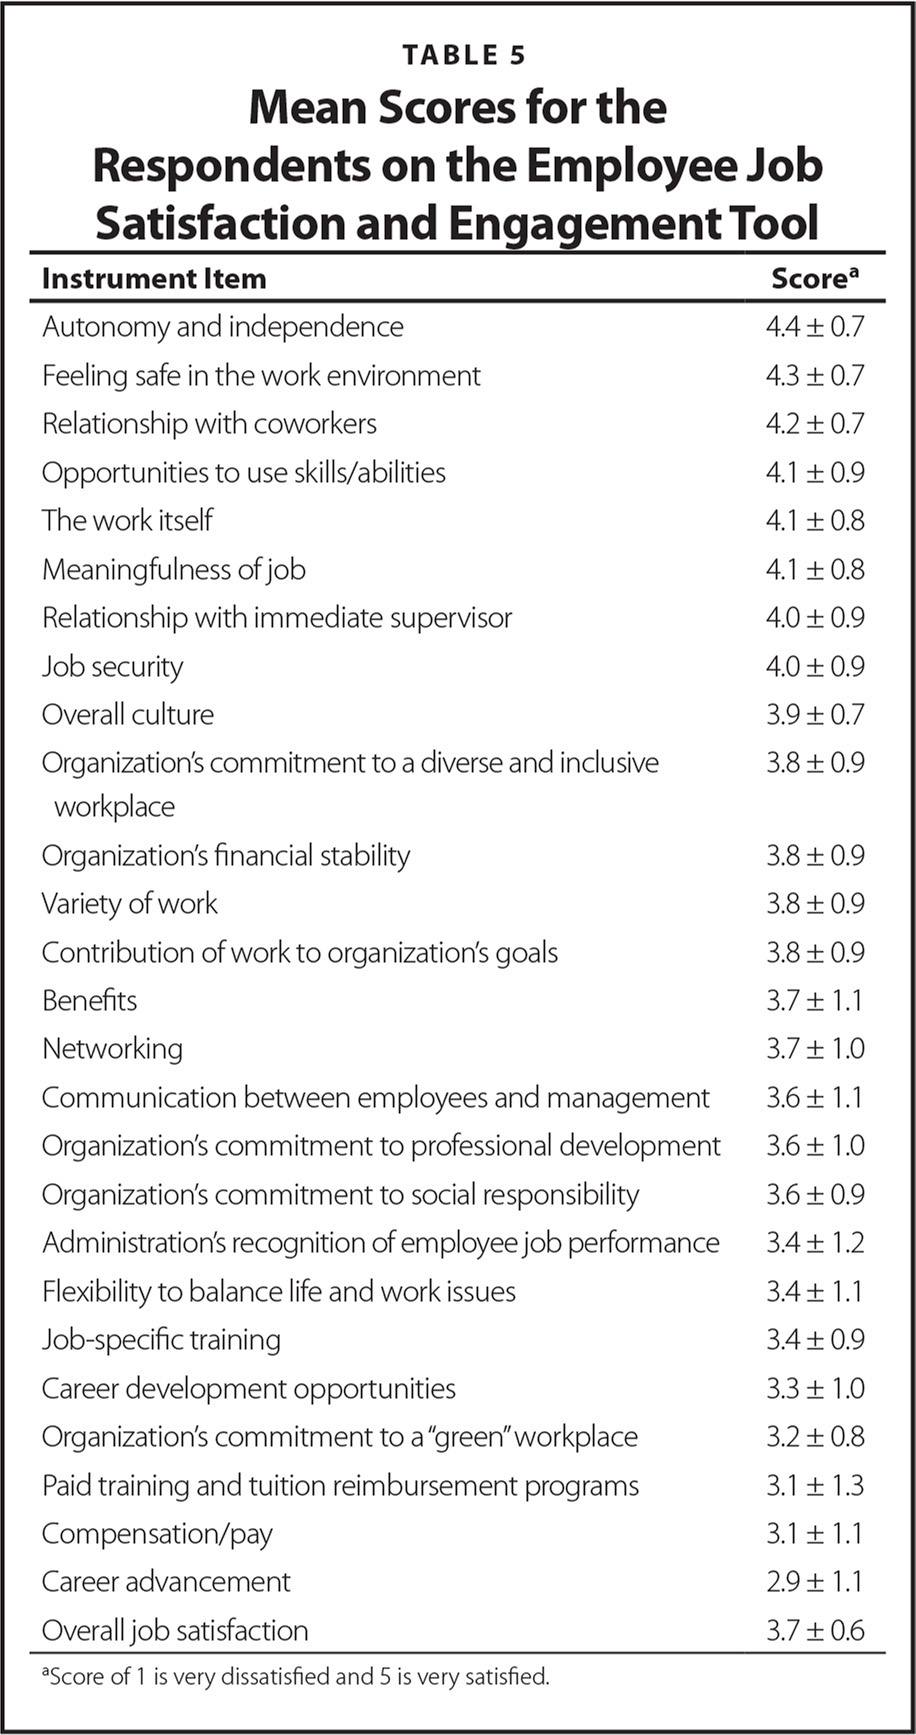 Mean Scores for the Respondents on the Employee Job Satisfaction and Engagement Tool